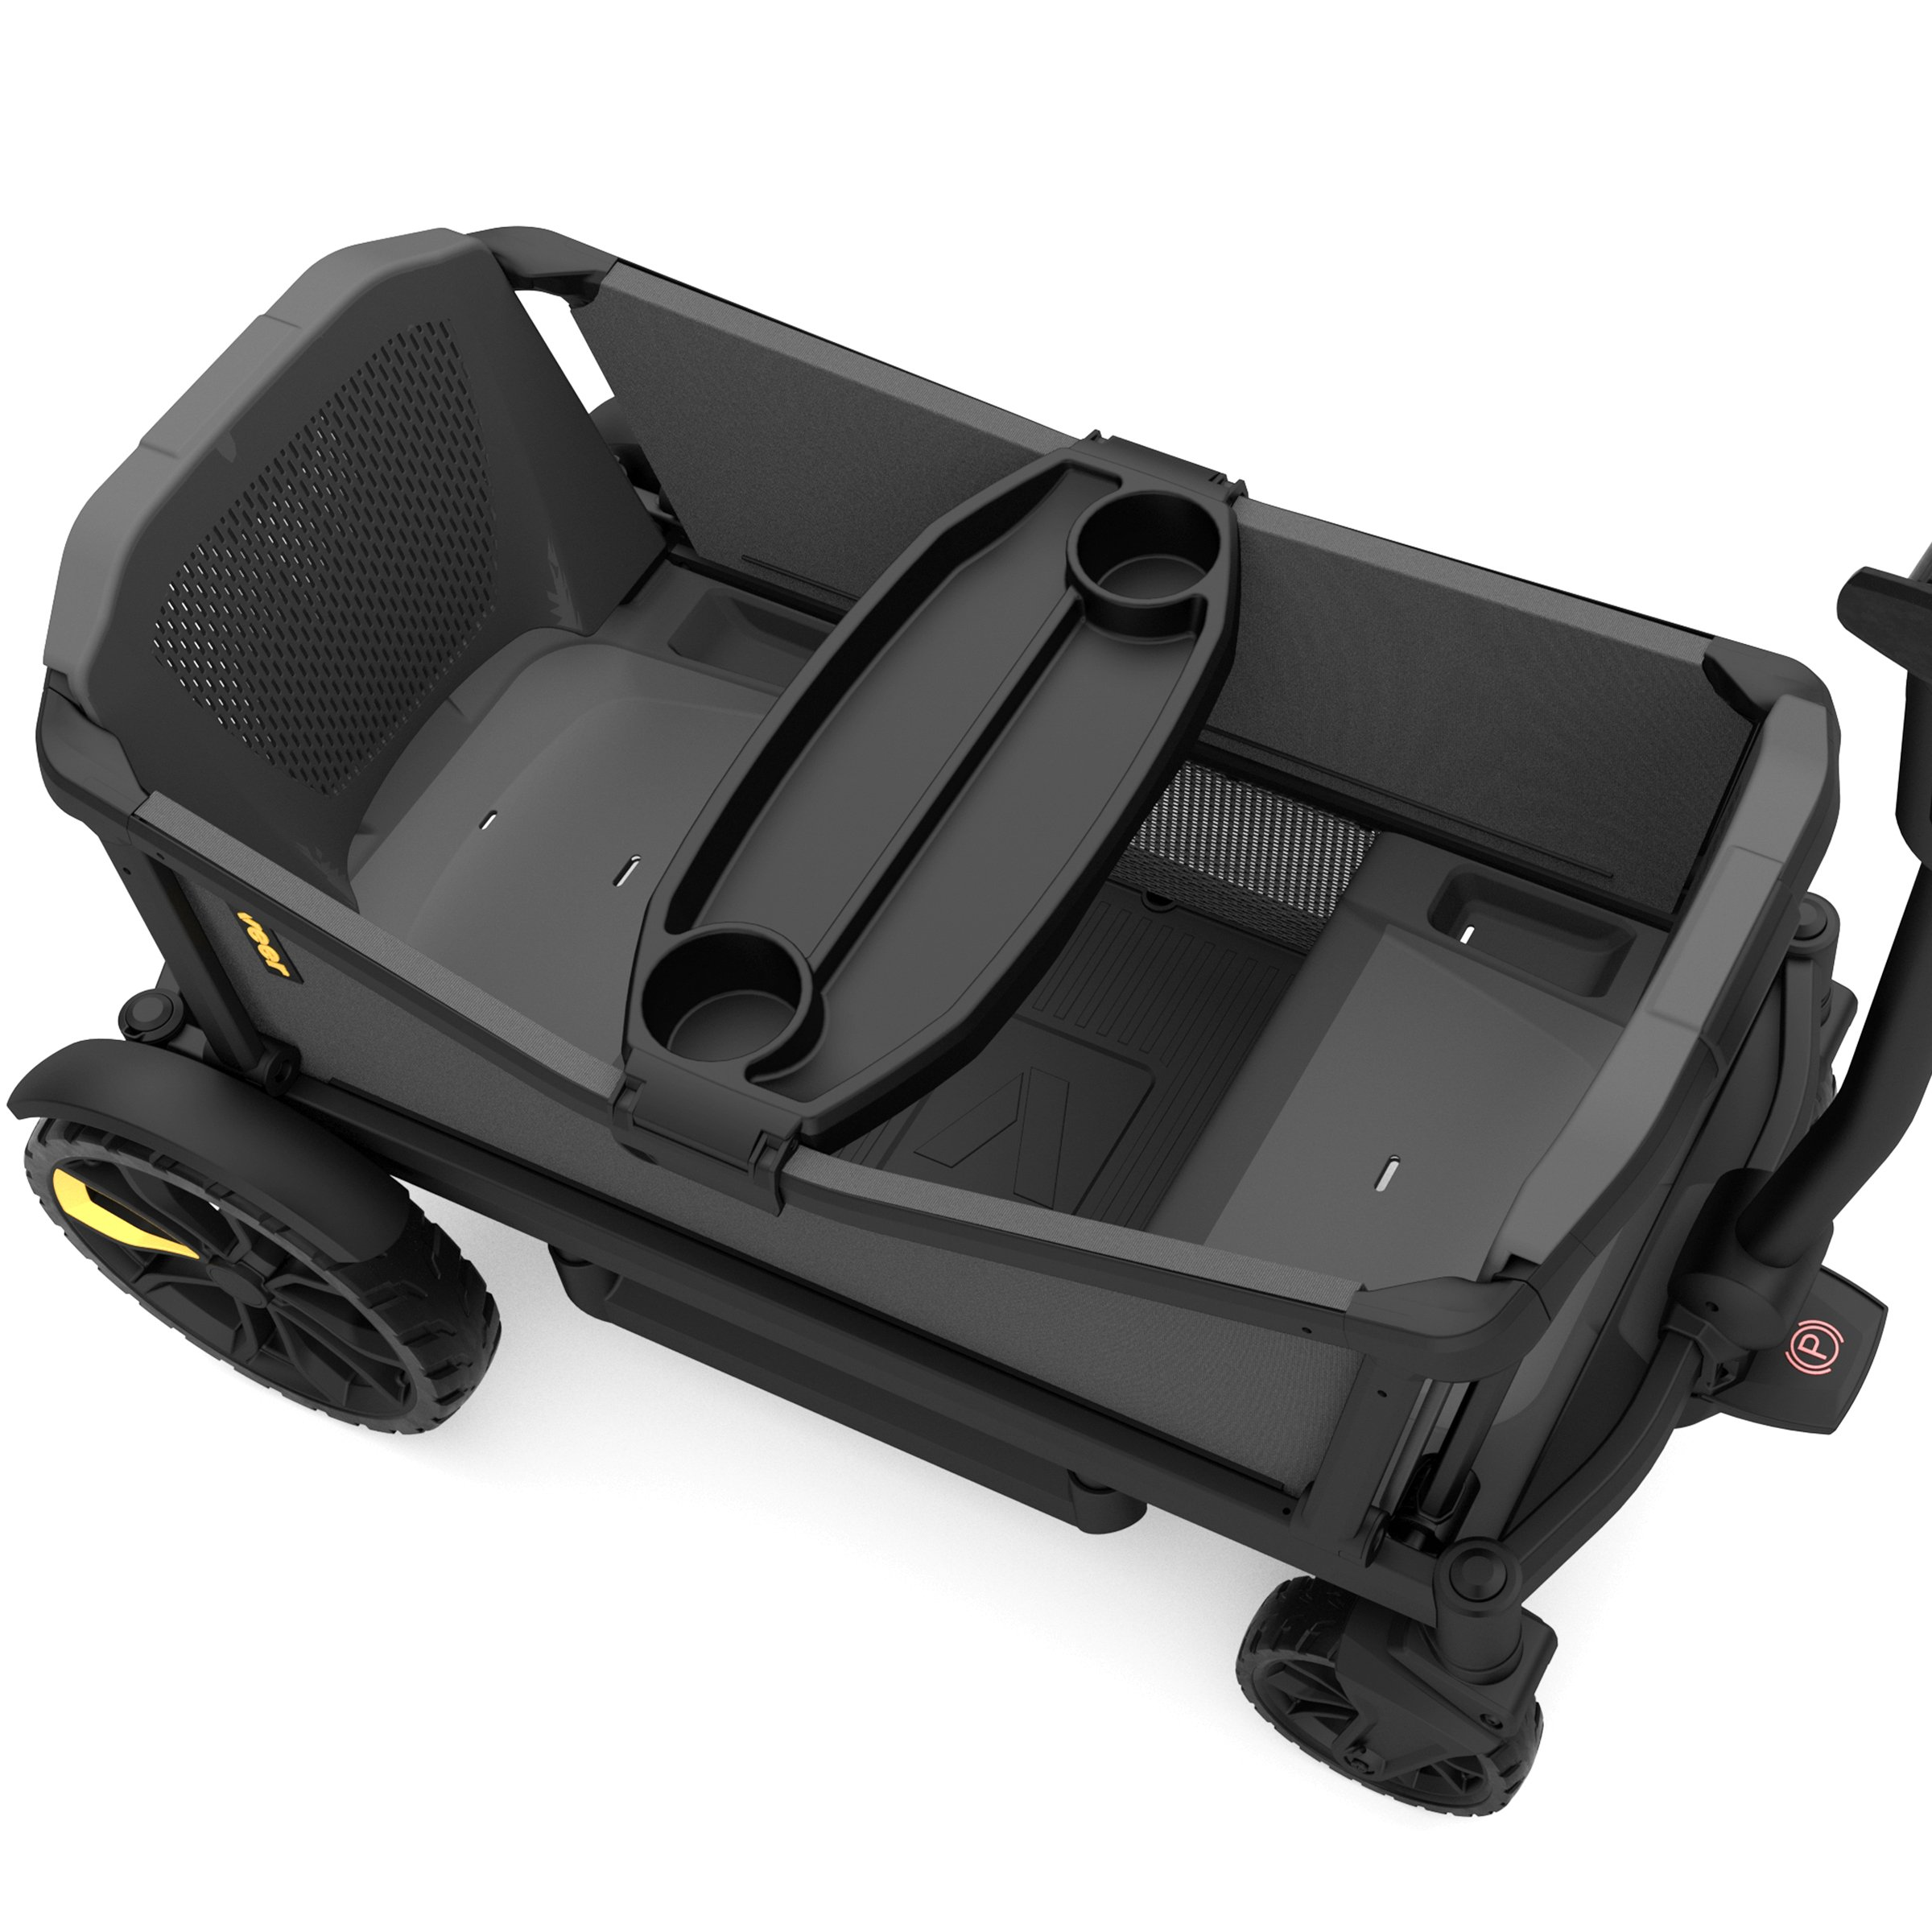 Veer Cruiser with Retractable Canopy | Next Generation Premium Stroller Wagon Hybrid by Veer (Image #4)